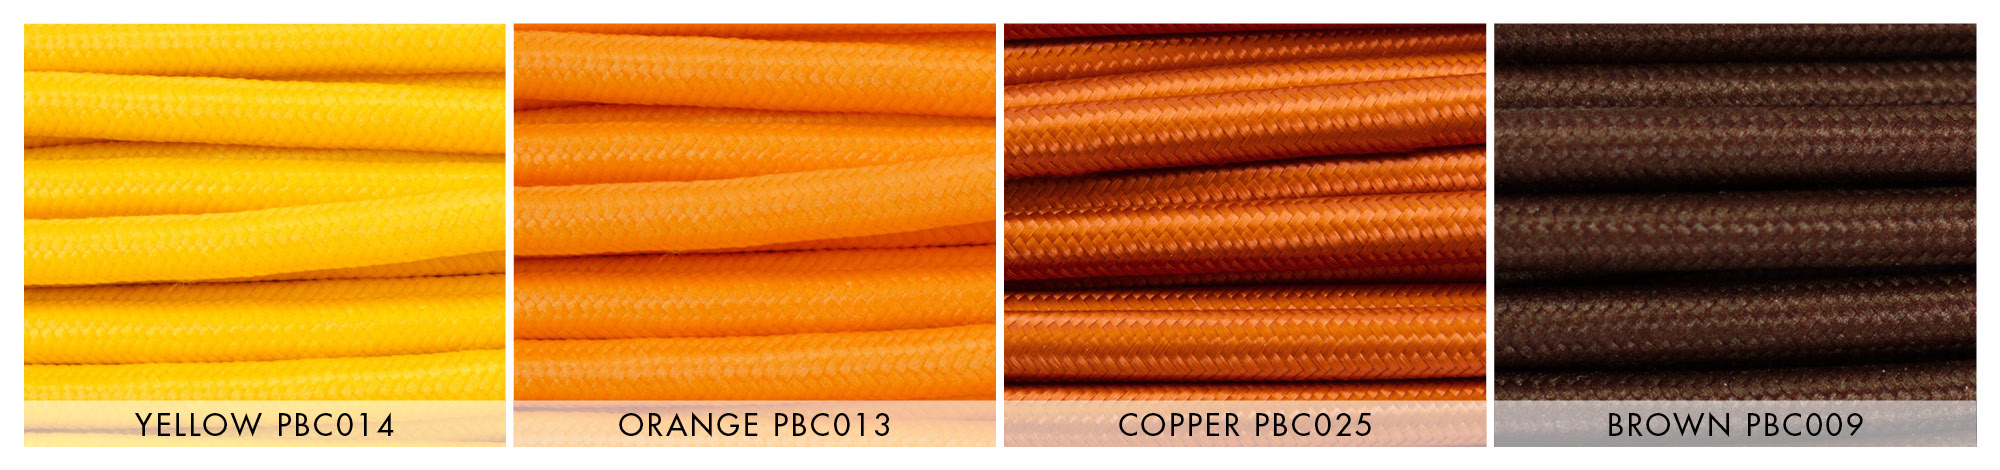 MOS cabling colours6.jpg